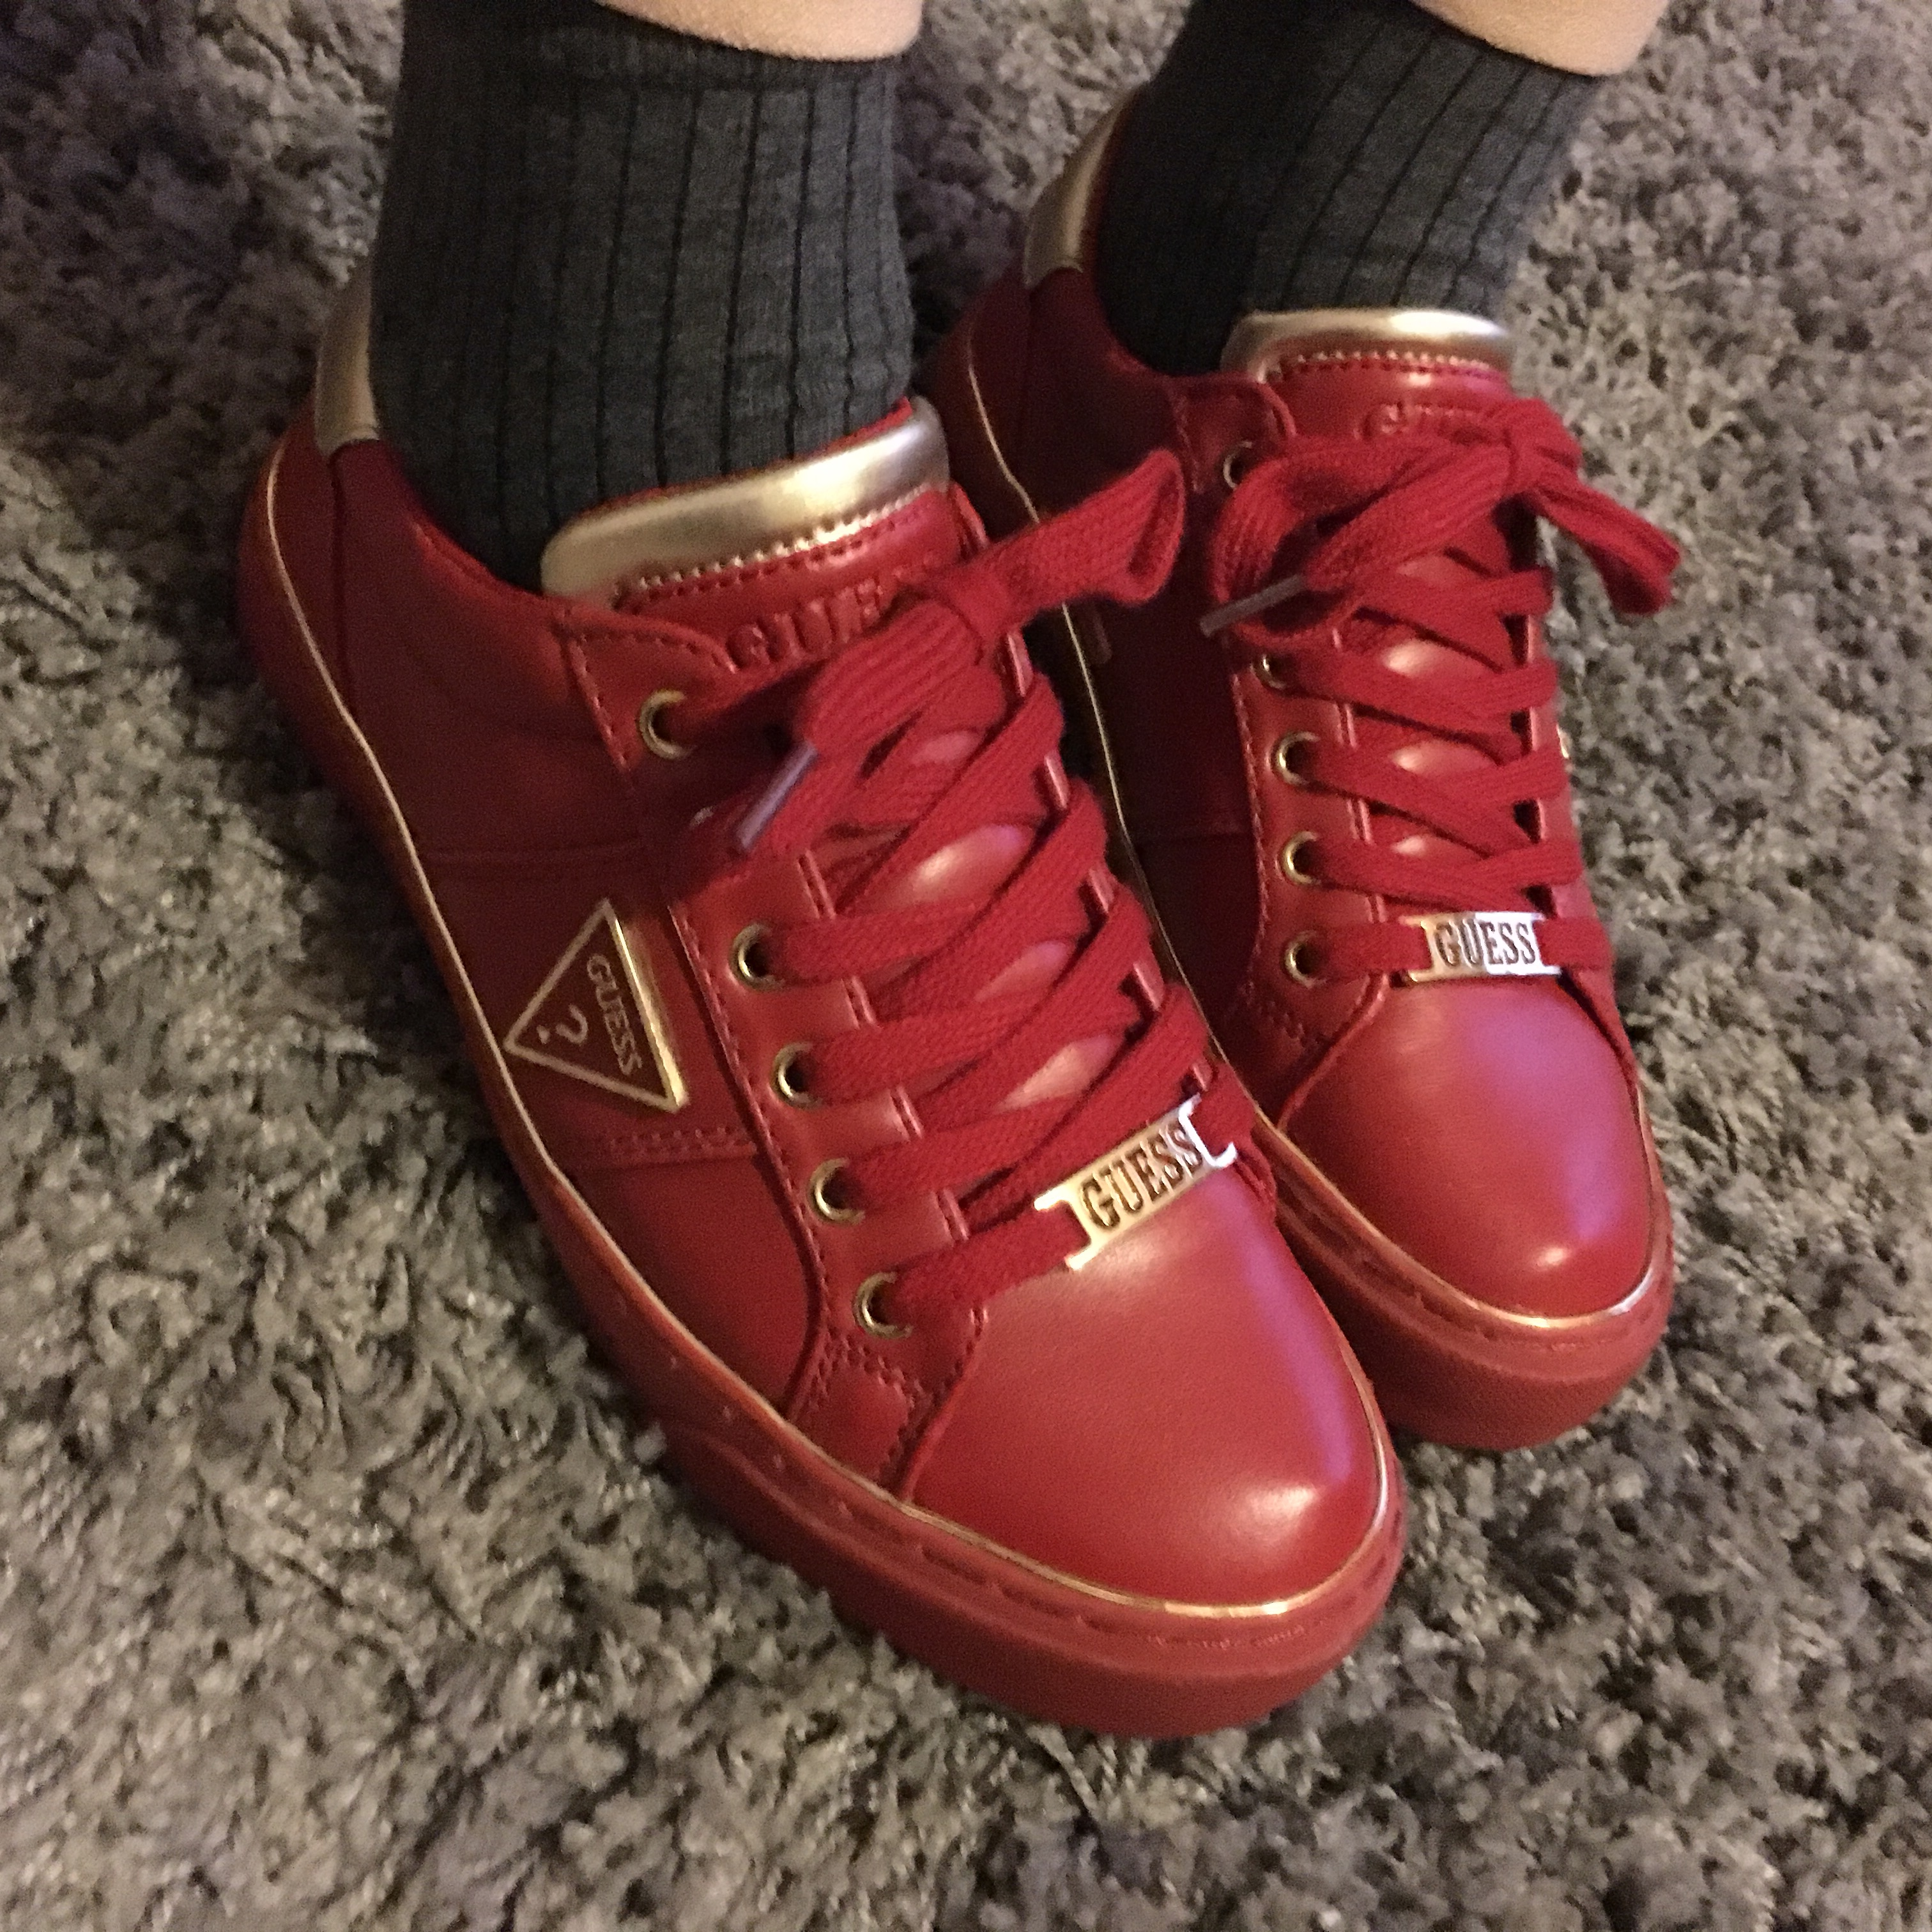 🎈RED AND GOLD DETAILING GUESS TRAINERS